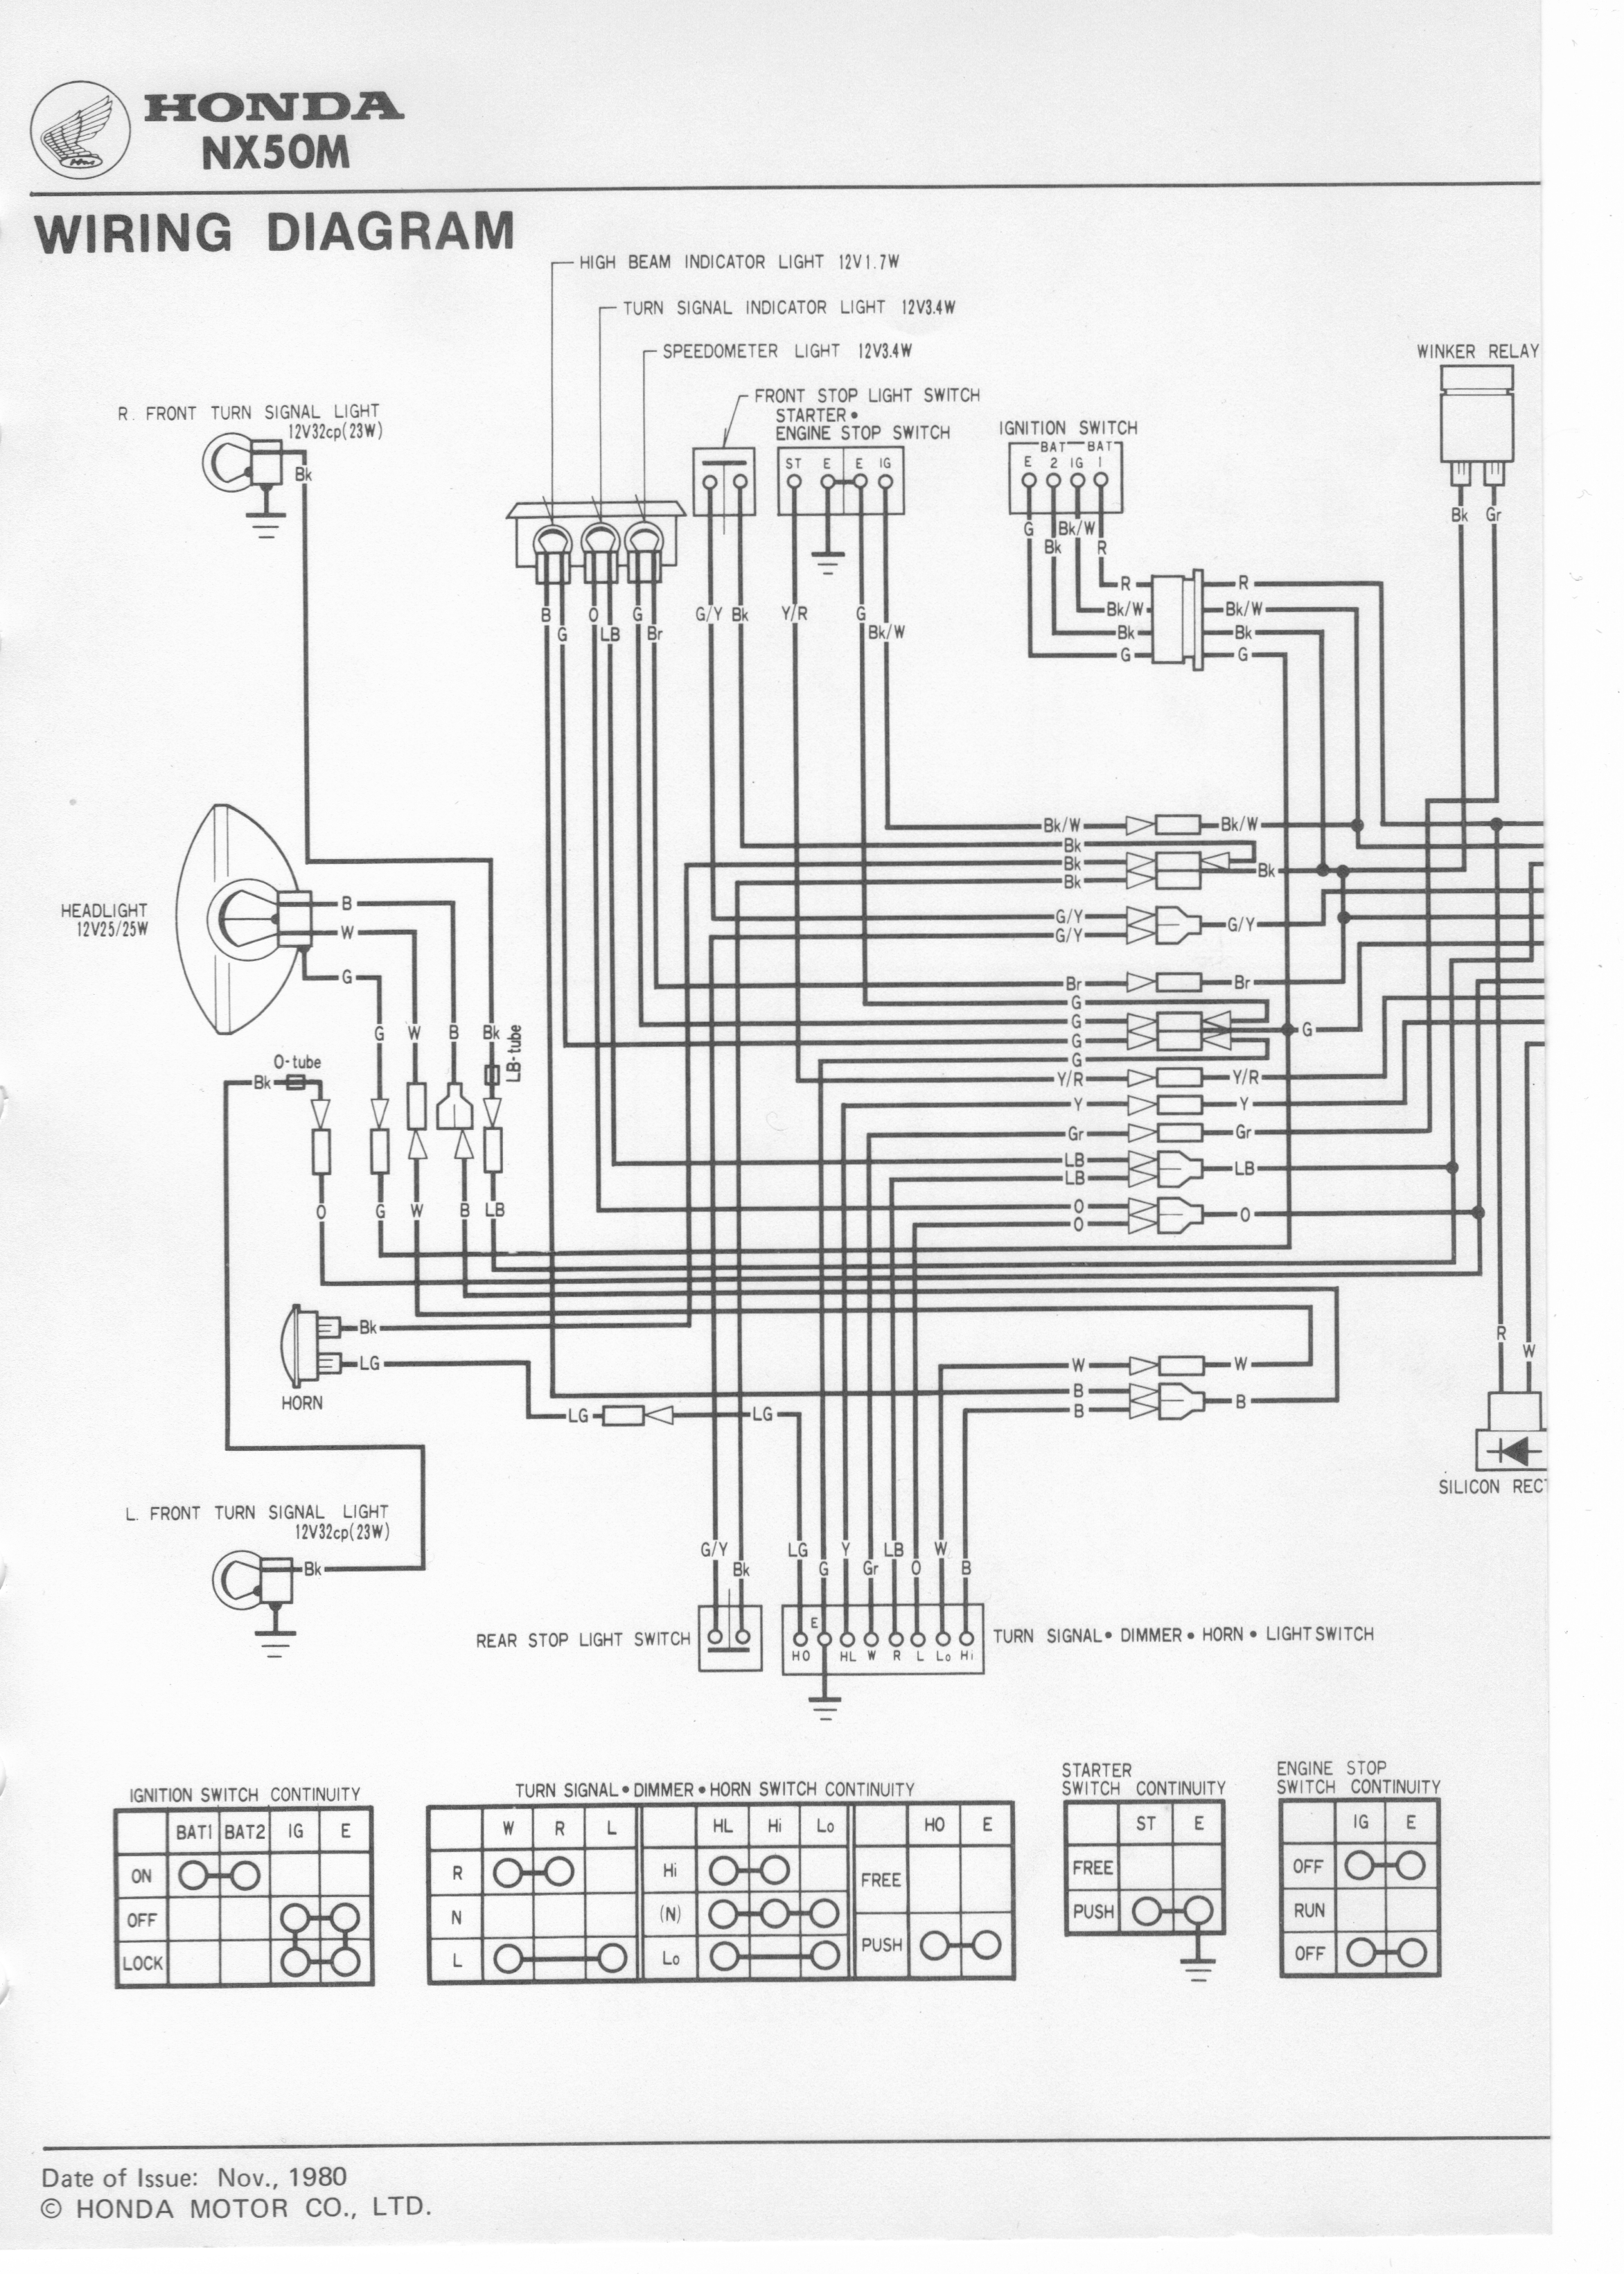 DIAGRAM] 1978 Honda Express Wiring Diagrams FULL Version HD Quality Wiring  Diagrams - WIRINGTRACKPDF.LEDICKENS.FRWiring And Fuse Database